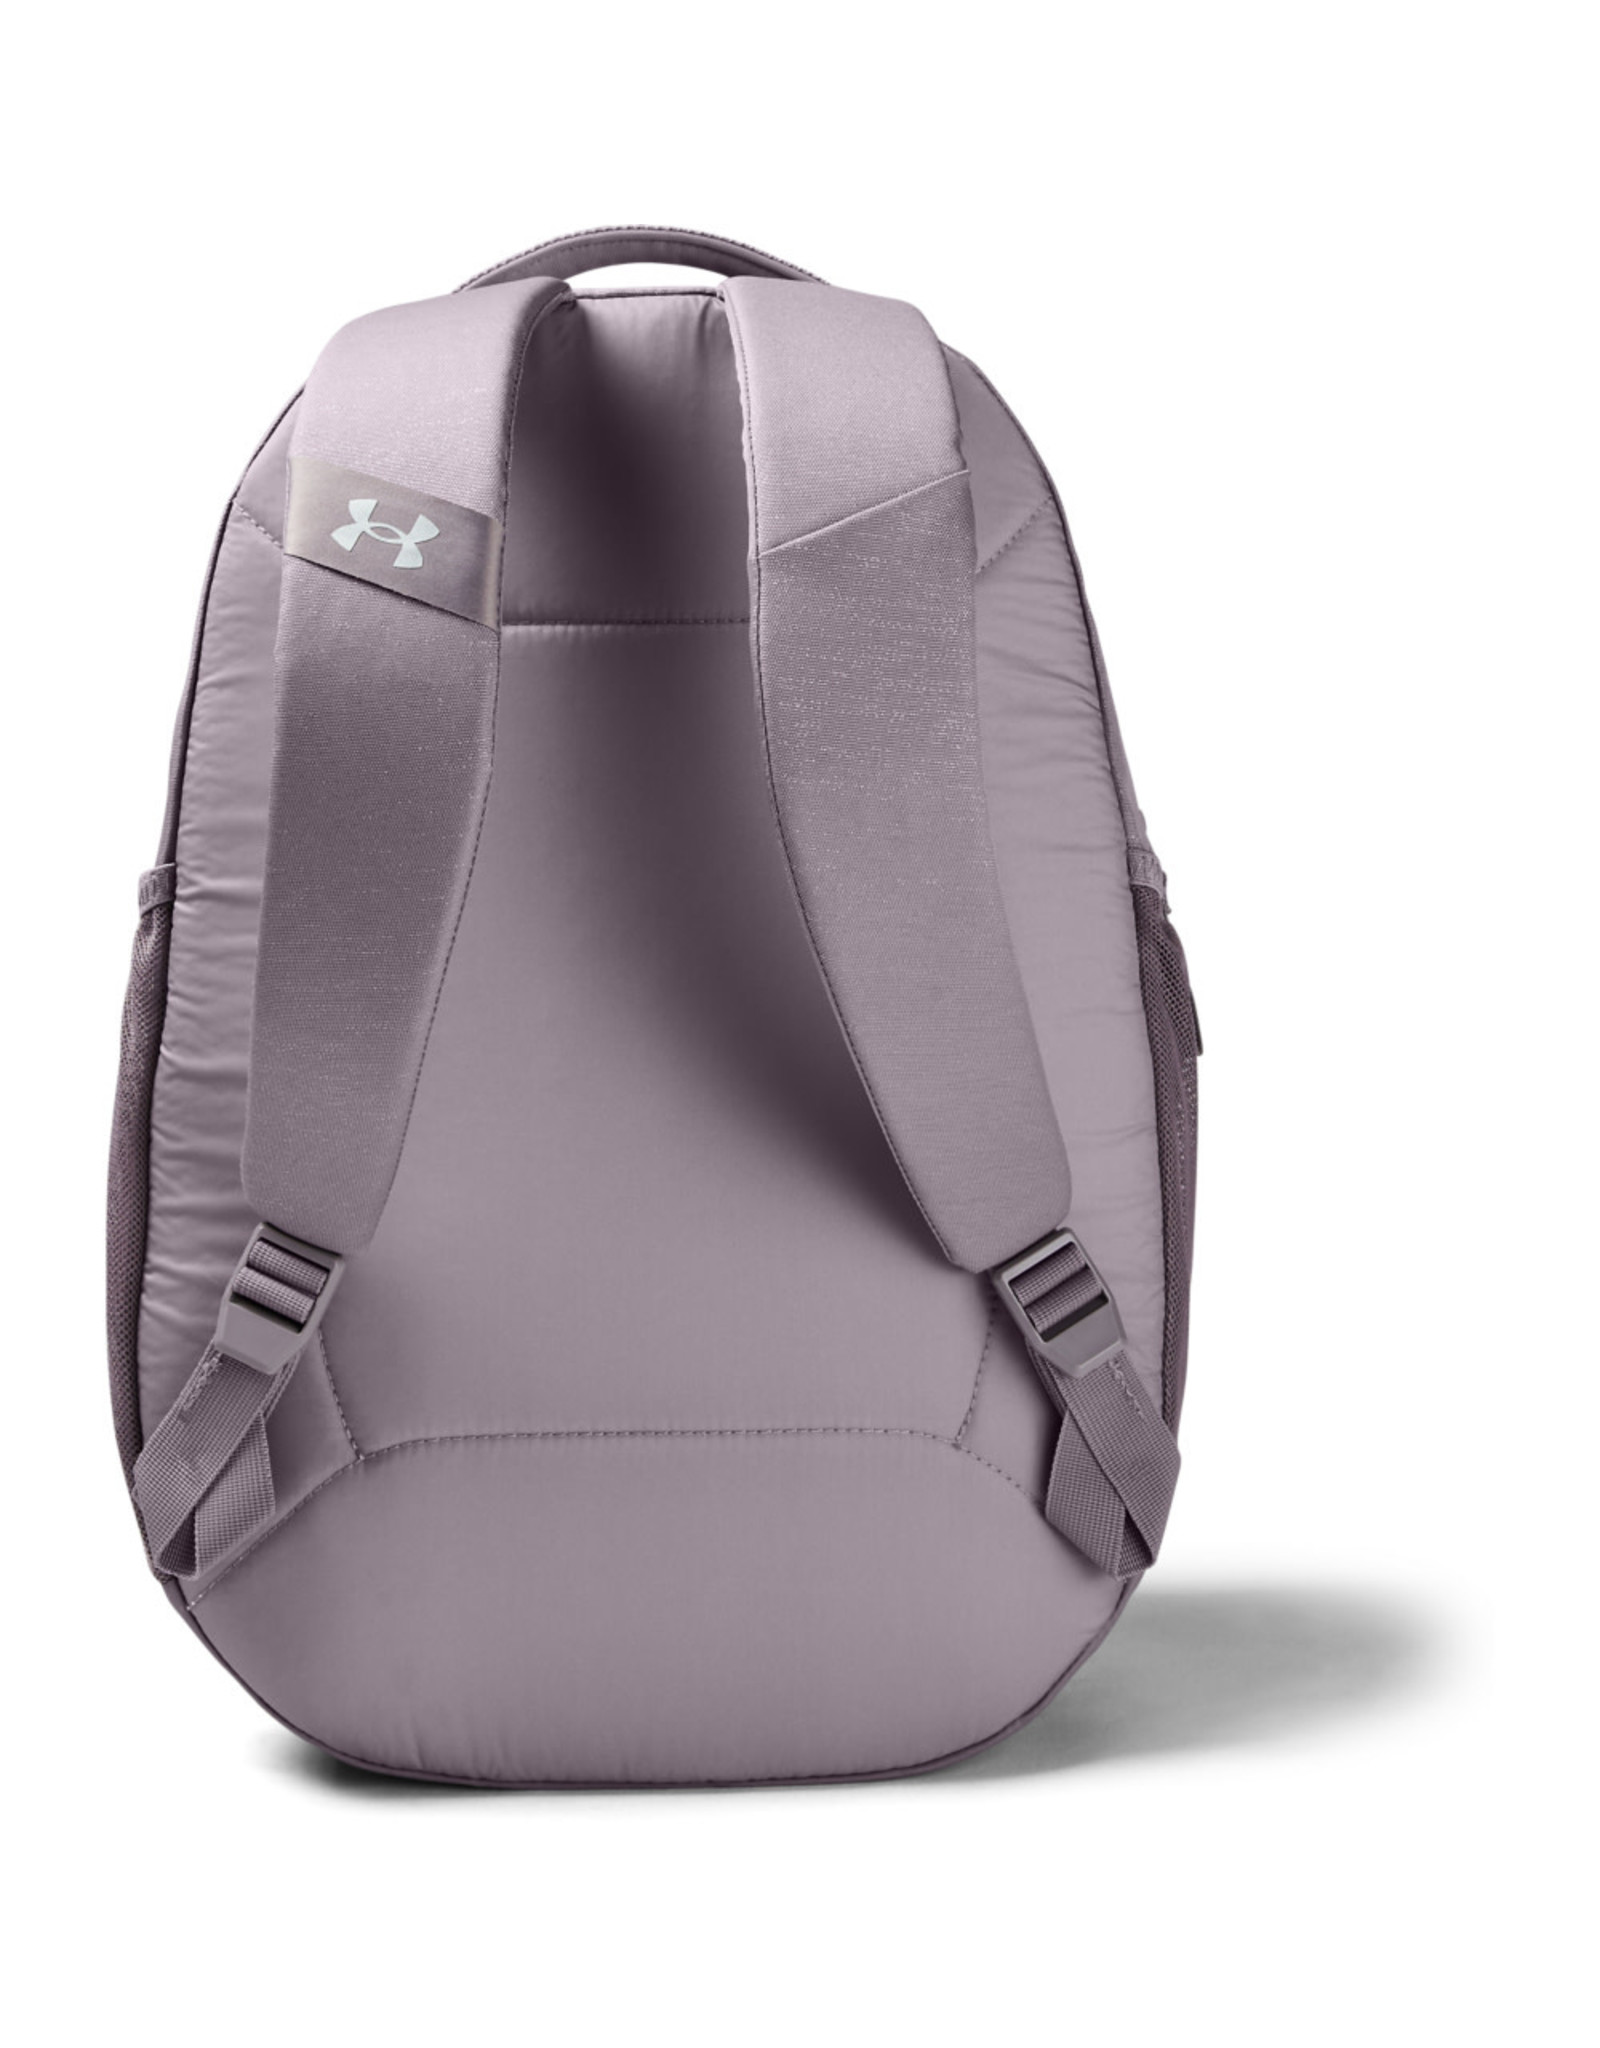 Under Armour UA Hustle Signature Backpack - Slate Purple-Slate Purple-Metallic Silver - OSFA